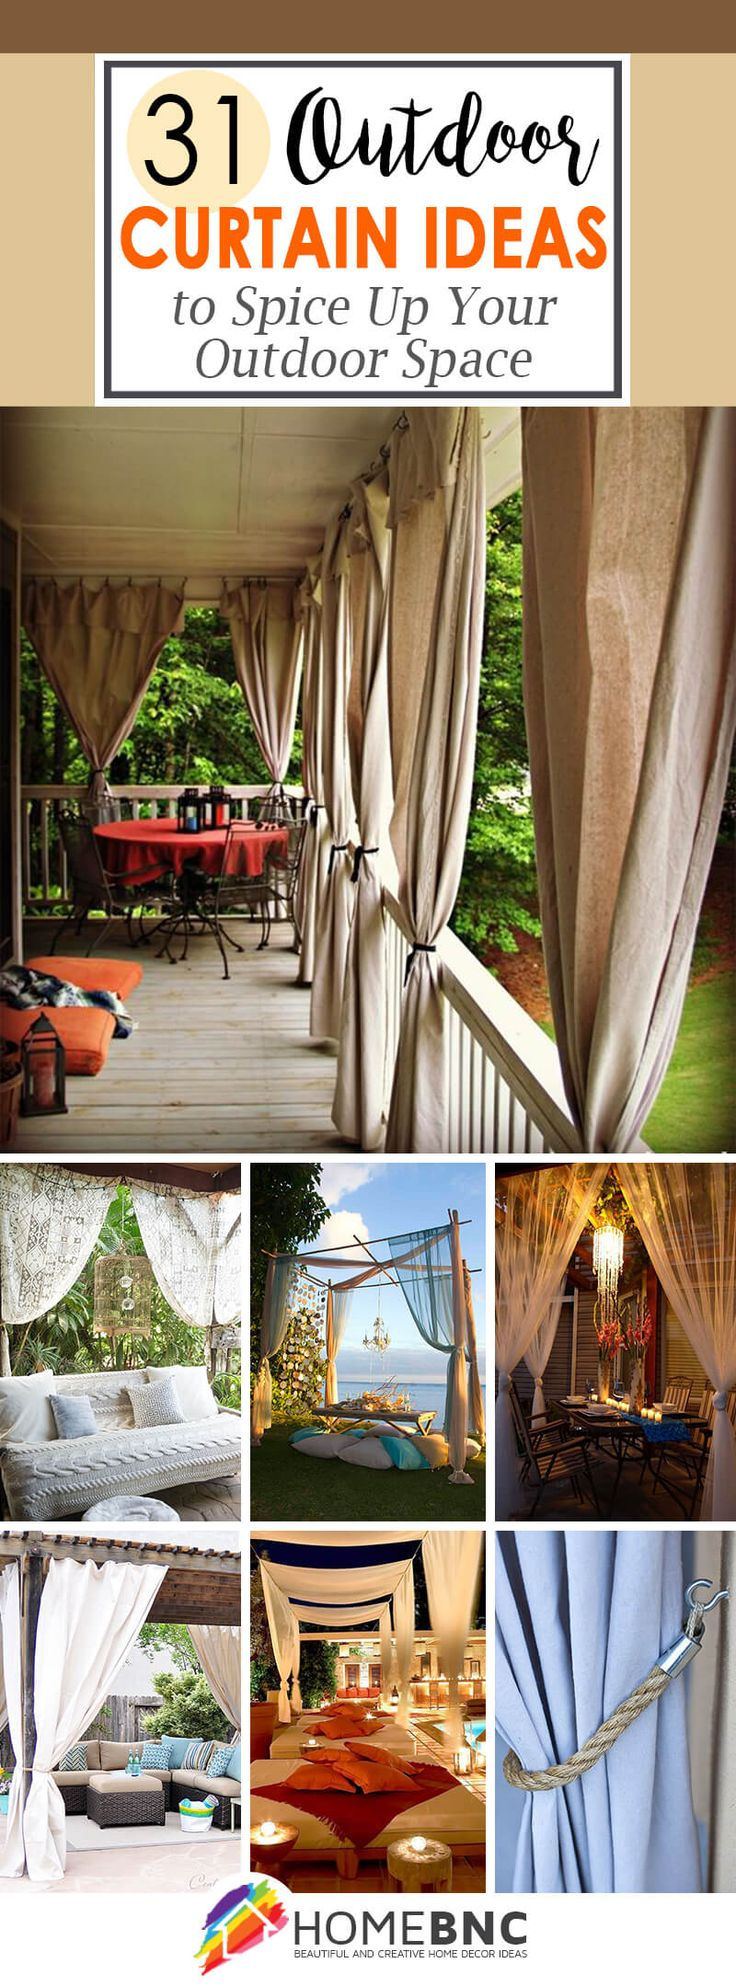 Outdoor curtain for patio - 31 Stylish Outdoor Curtain Ideas To Spice Up Your Outdoor Space